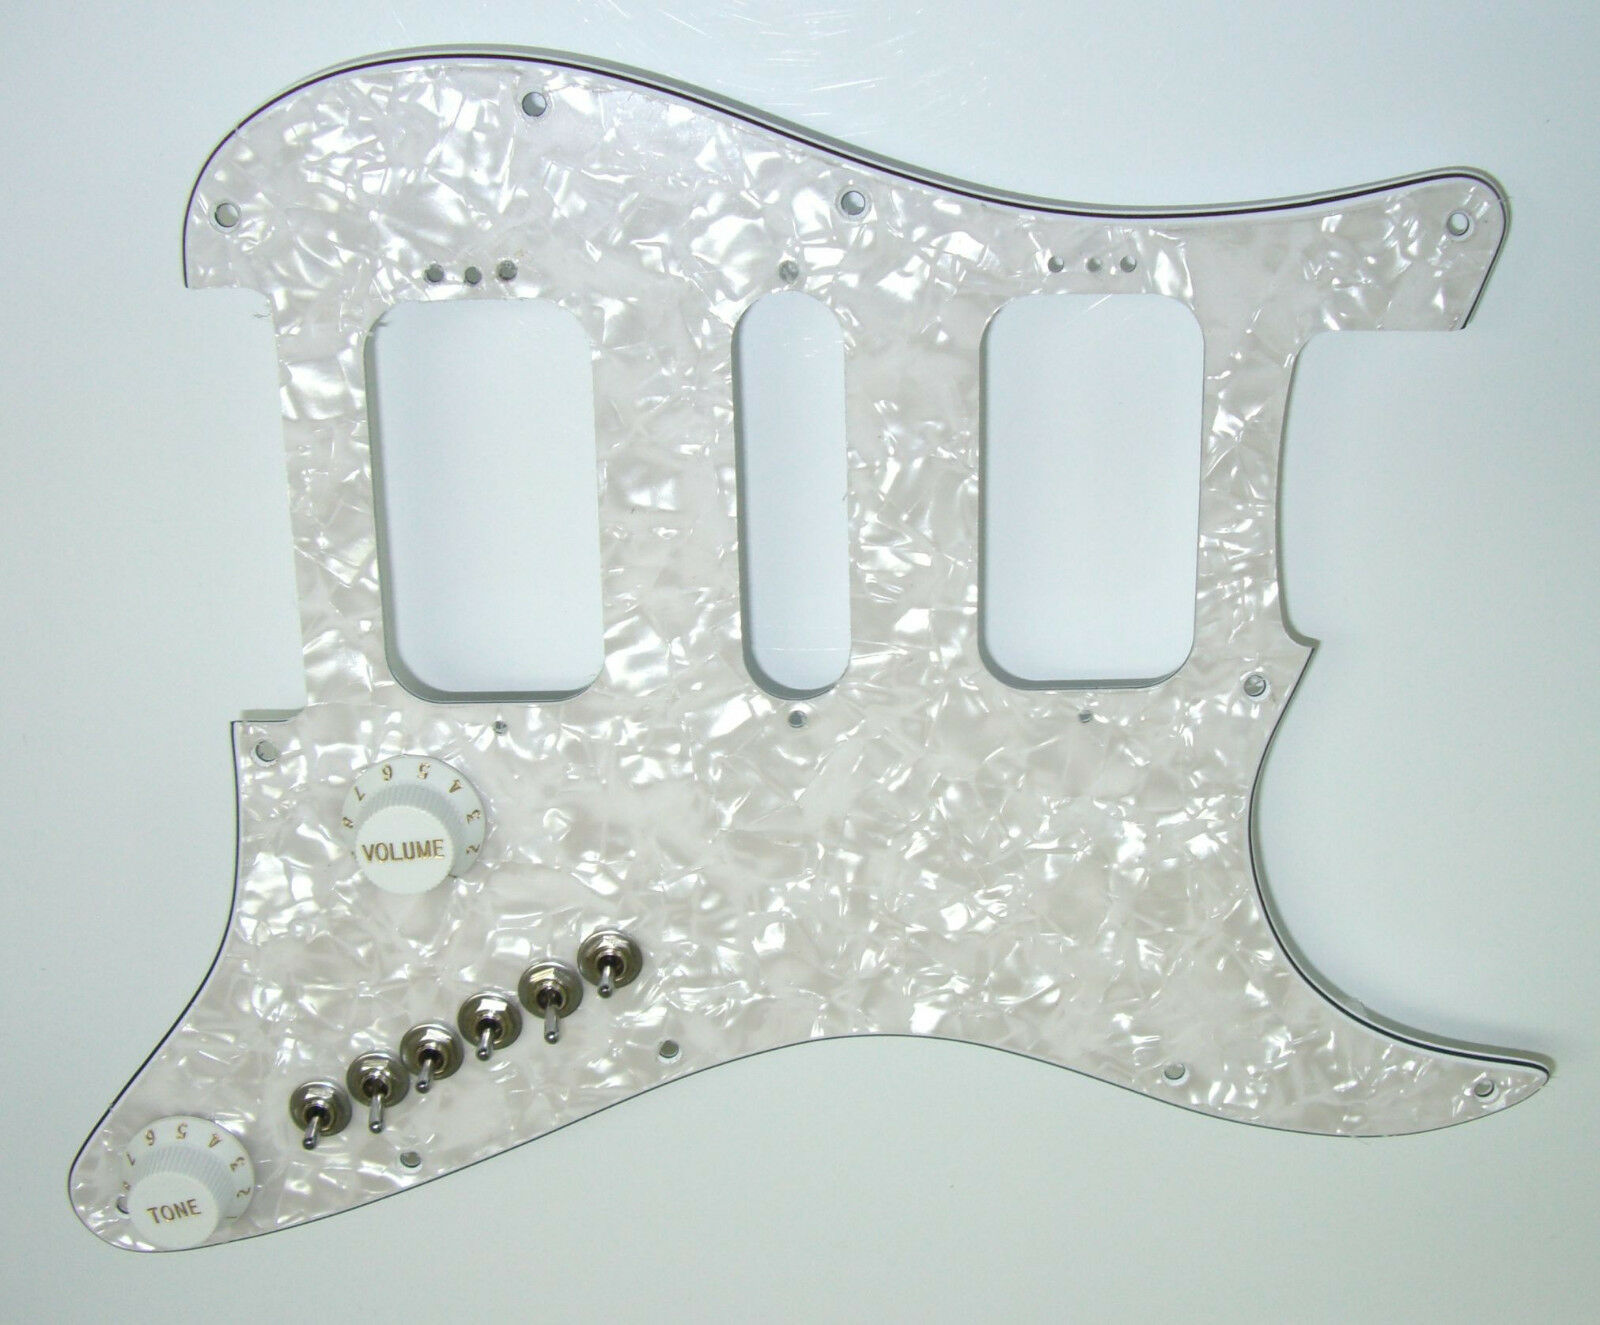 Upgrade Fits Fender HSH Stratocaster Strat Has 35 Pickup Tones + Treble Bleed